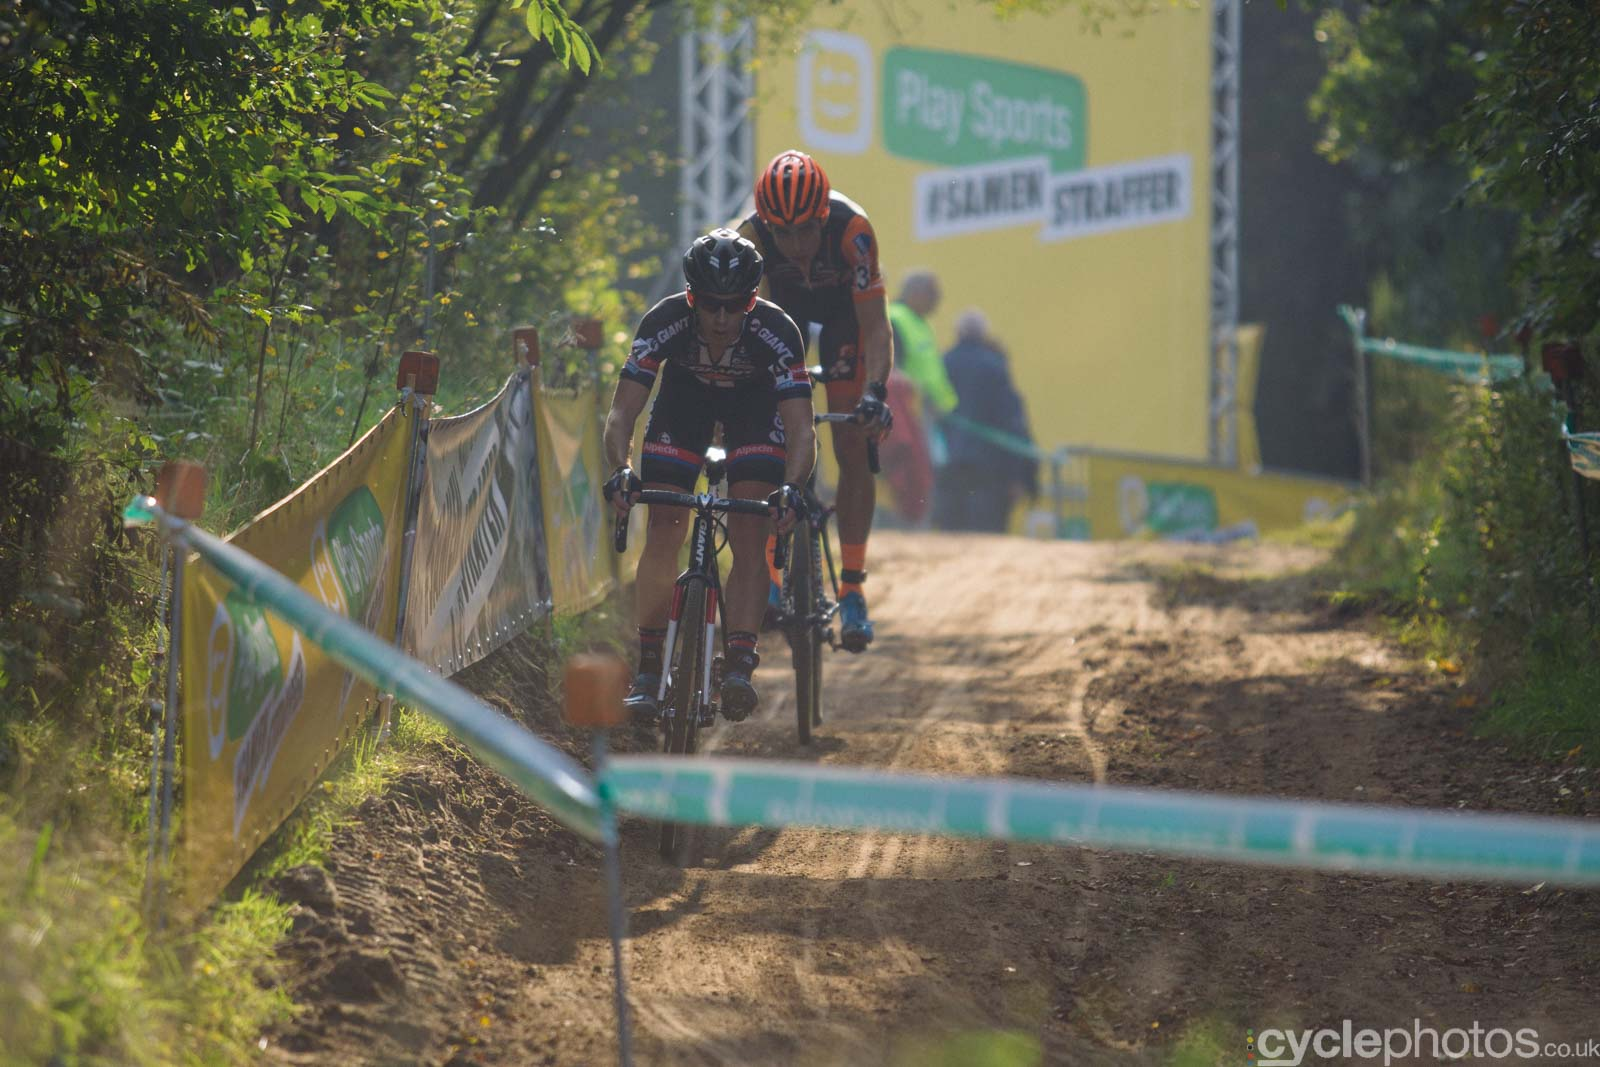 Lars van der Haar leads the race with four laps to go of the elite men's Superprestige race in Gieten, The Netherlands. All rights reserved. �Balint Hamvas / Cyclephotos